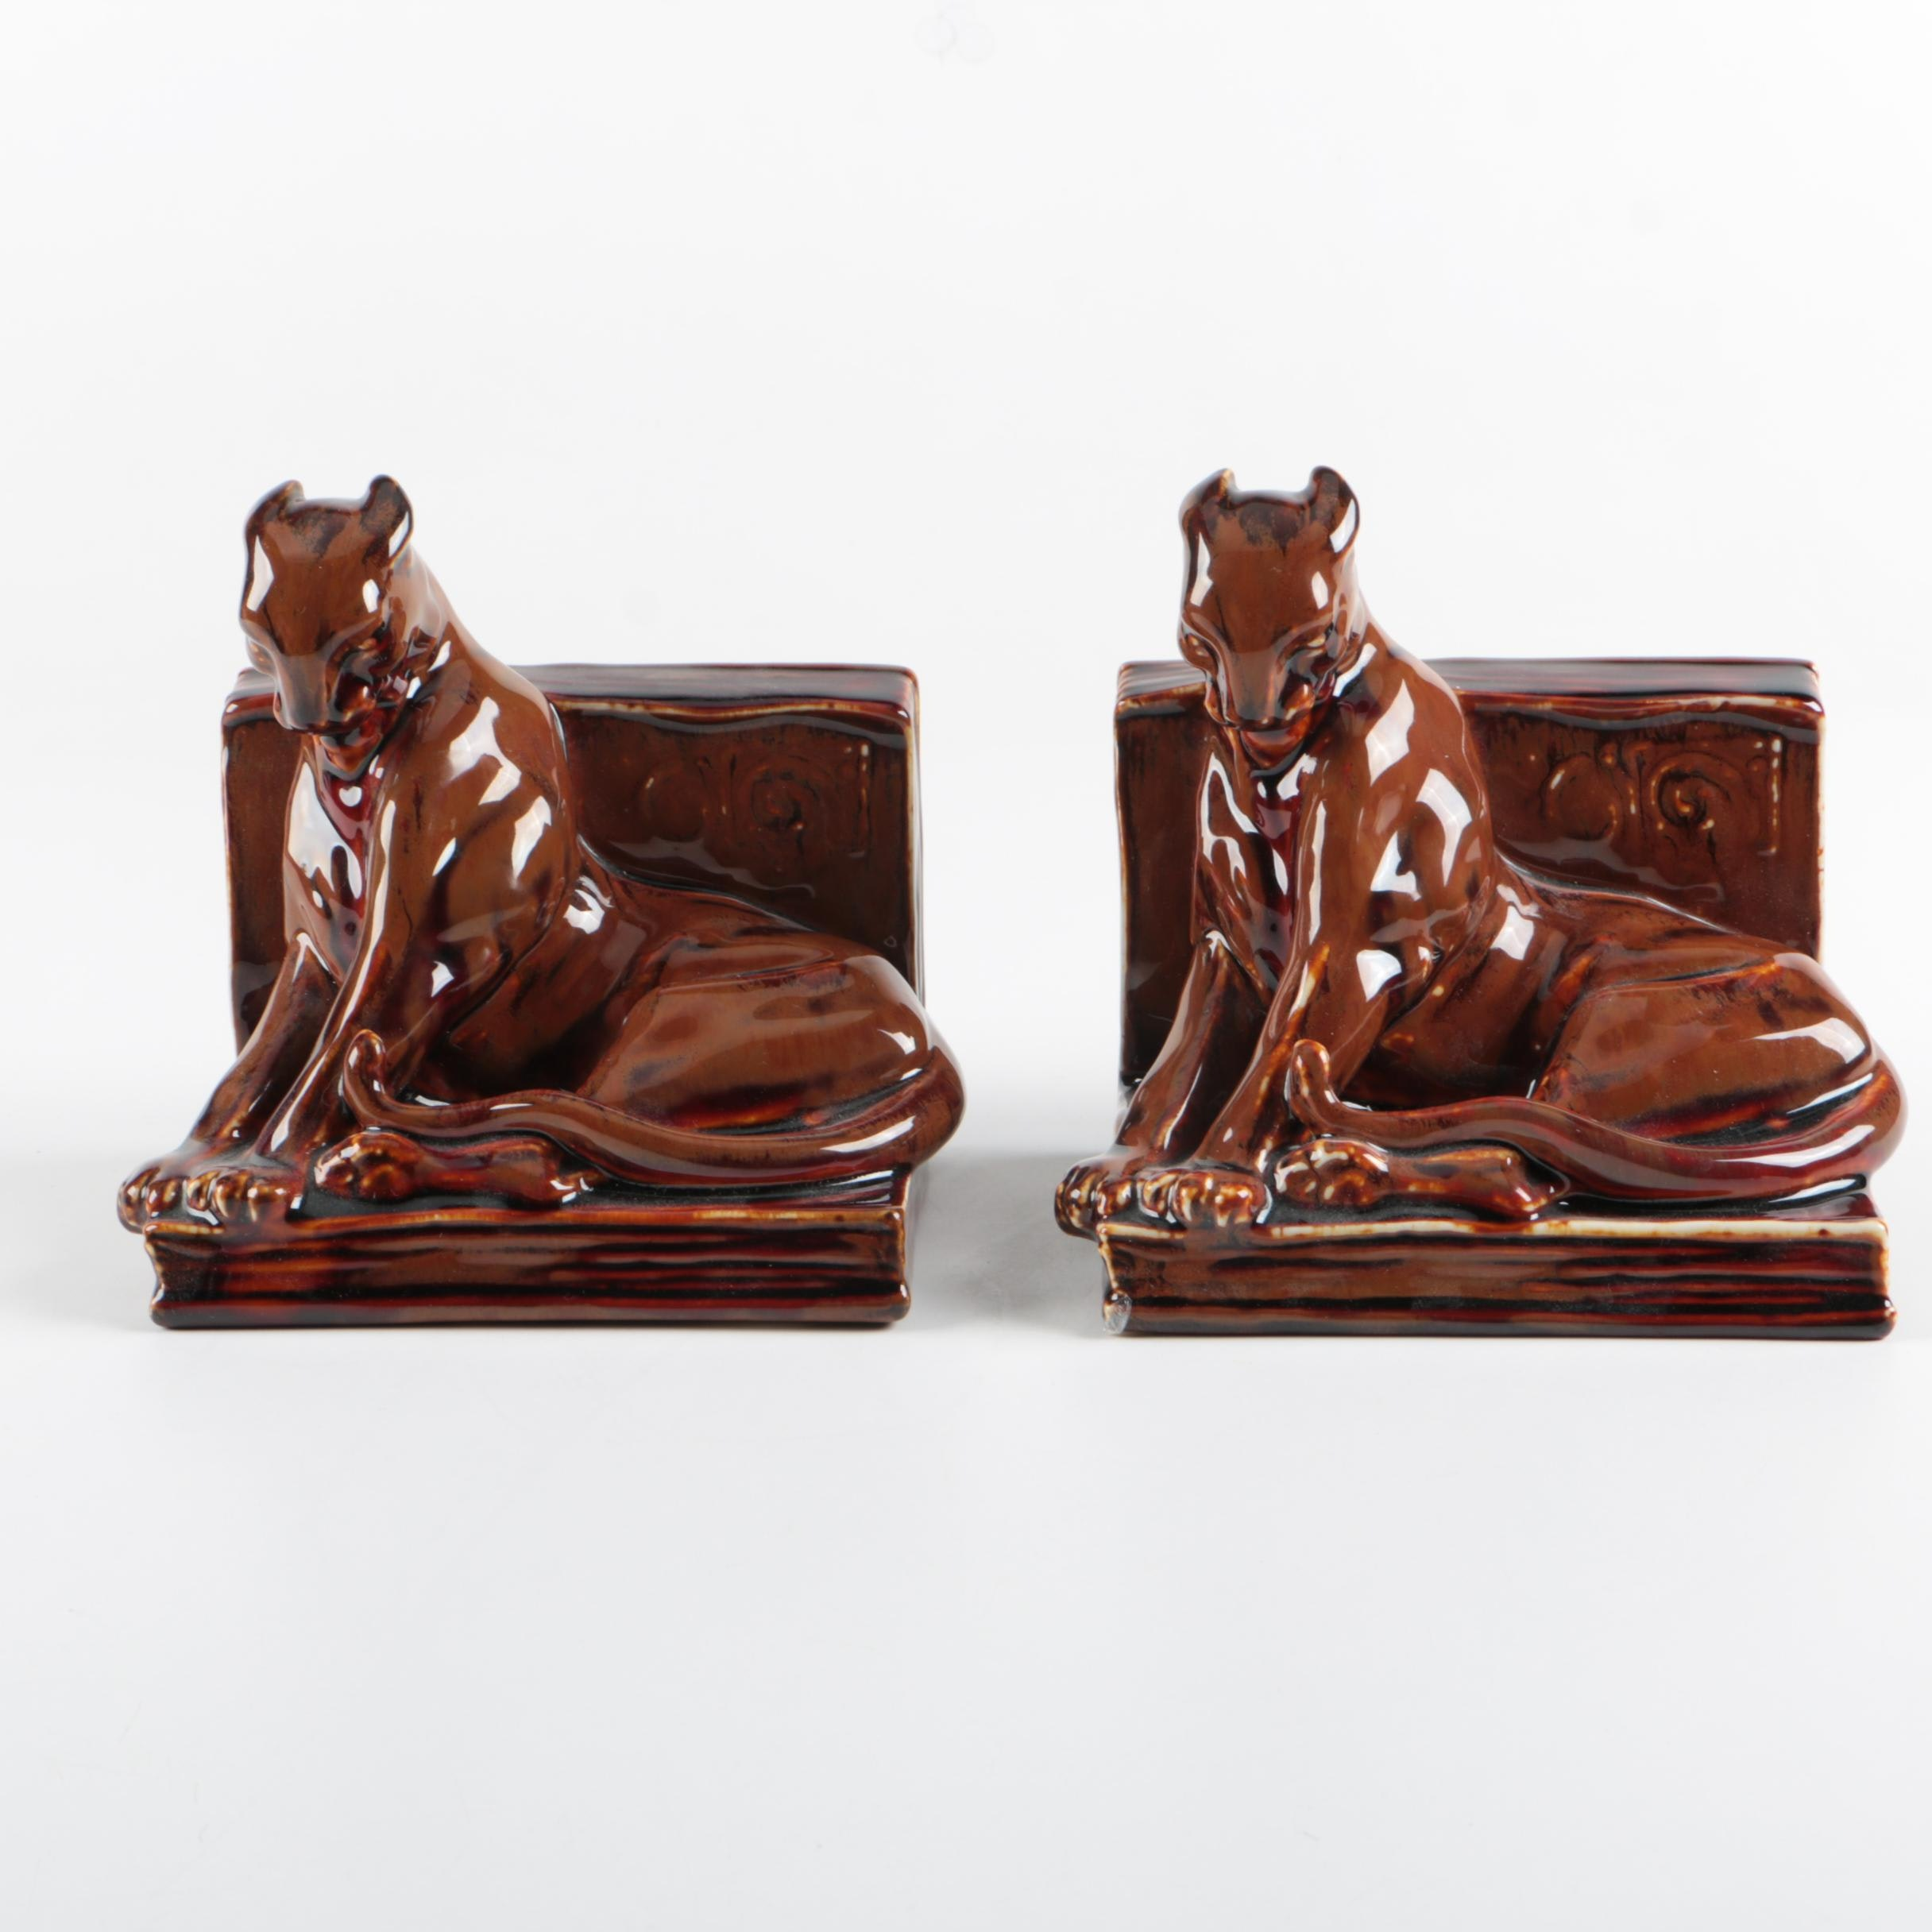 Rookwood Margaret McDonald Panther Bookends